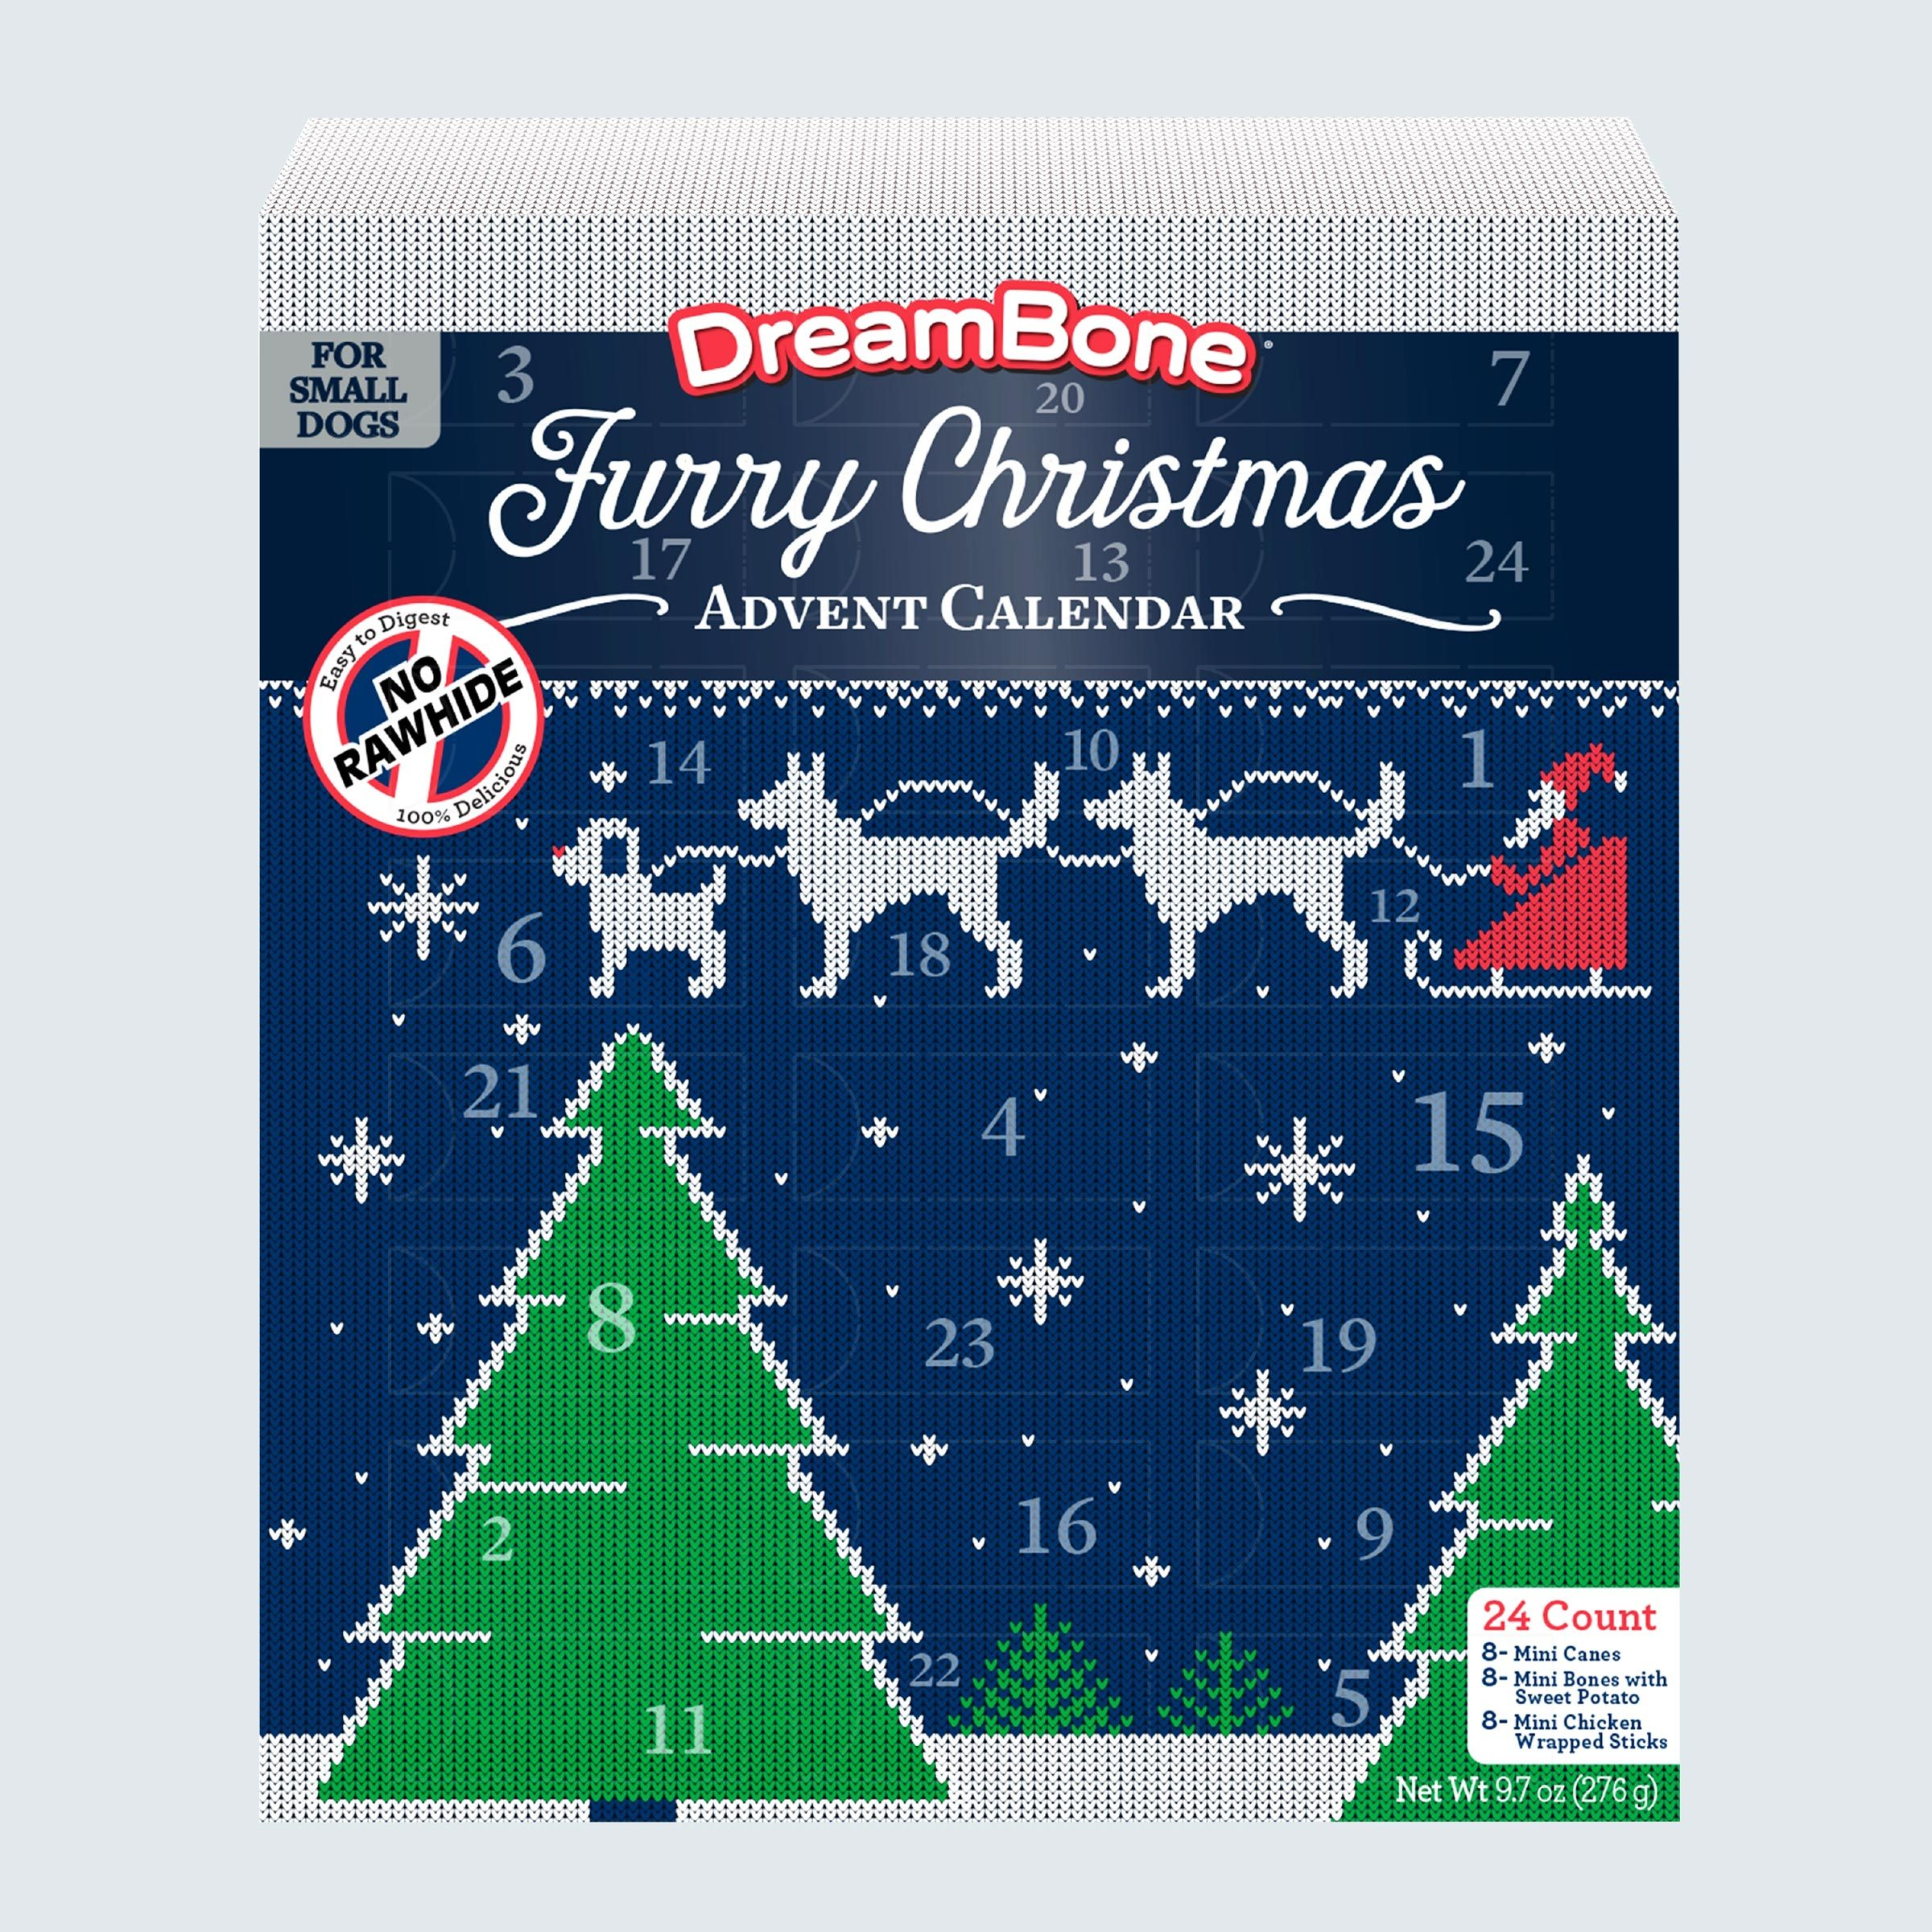 Dreambone Advent Calendar for Dogs